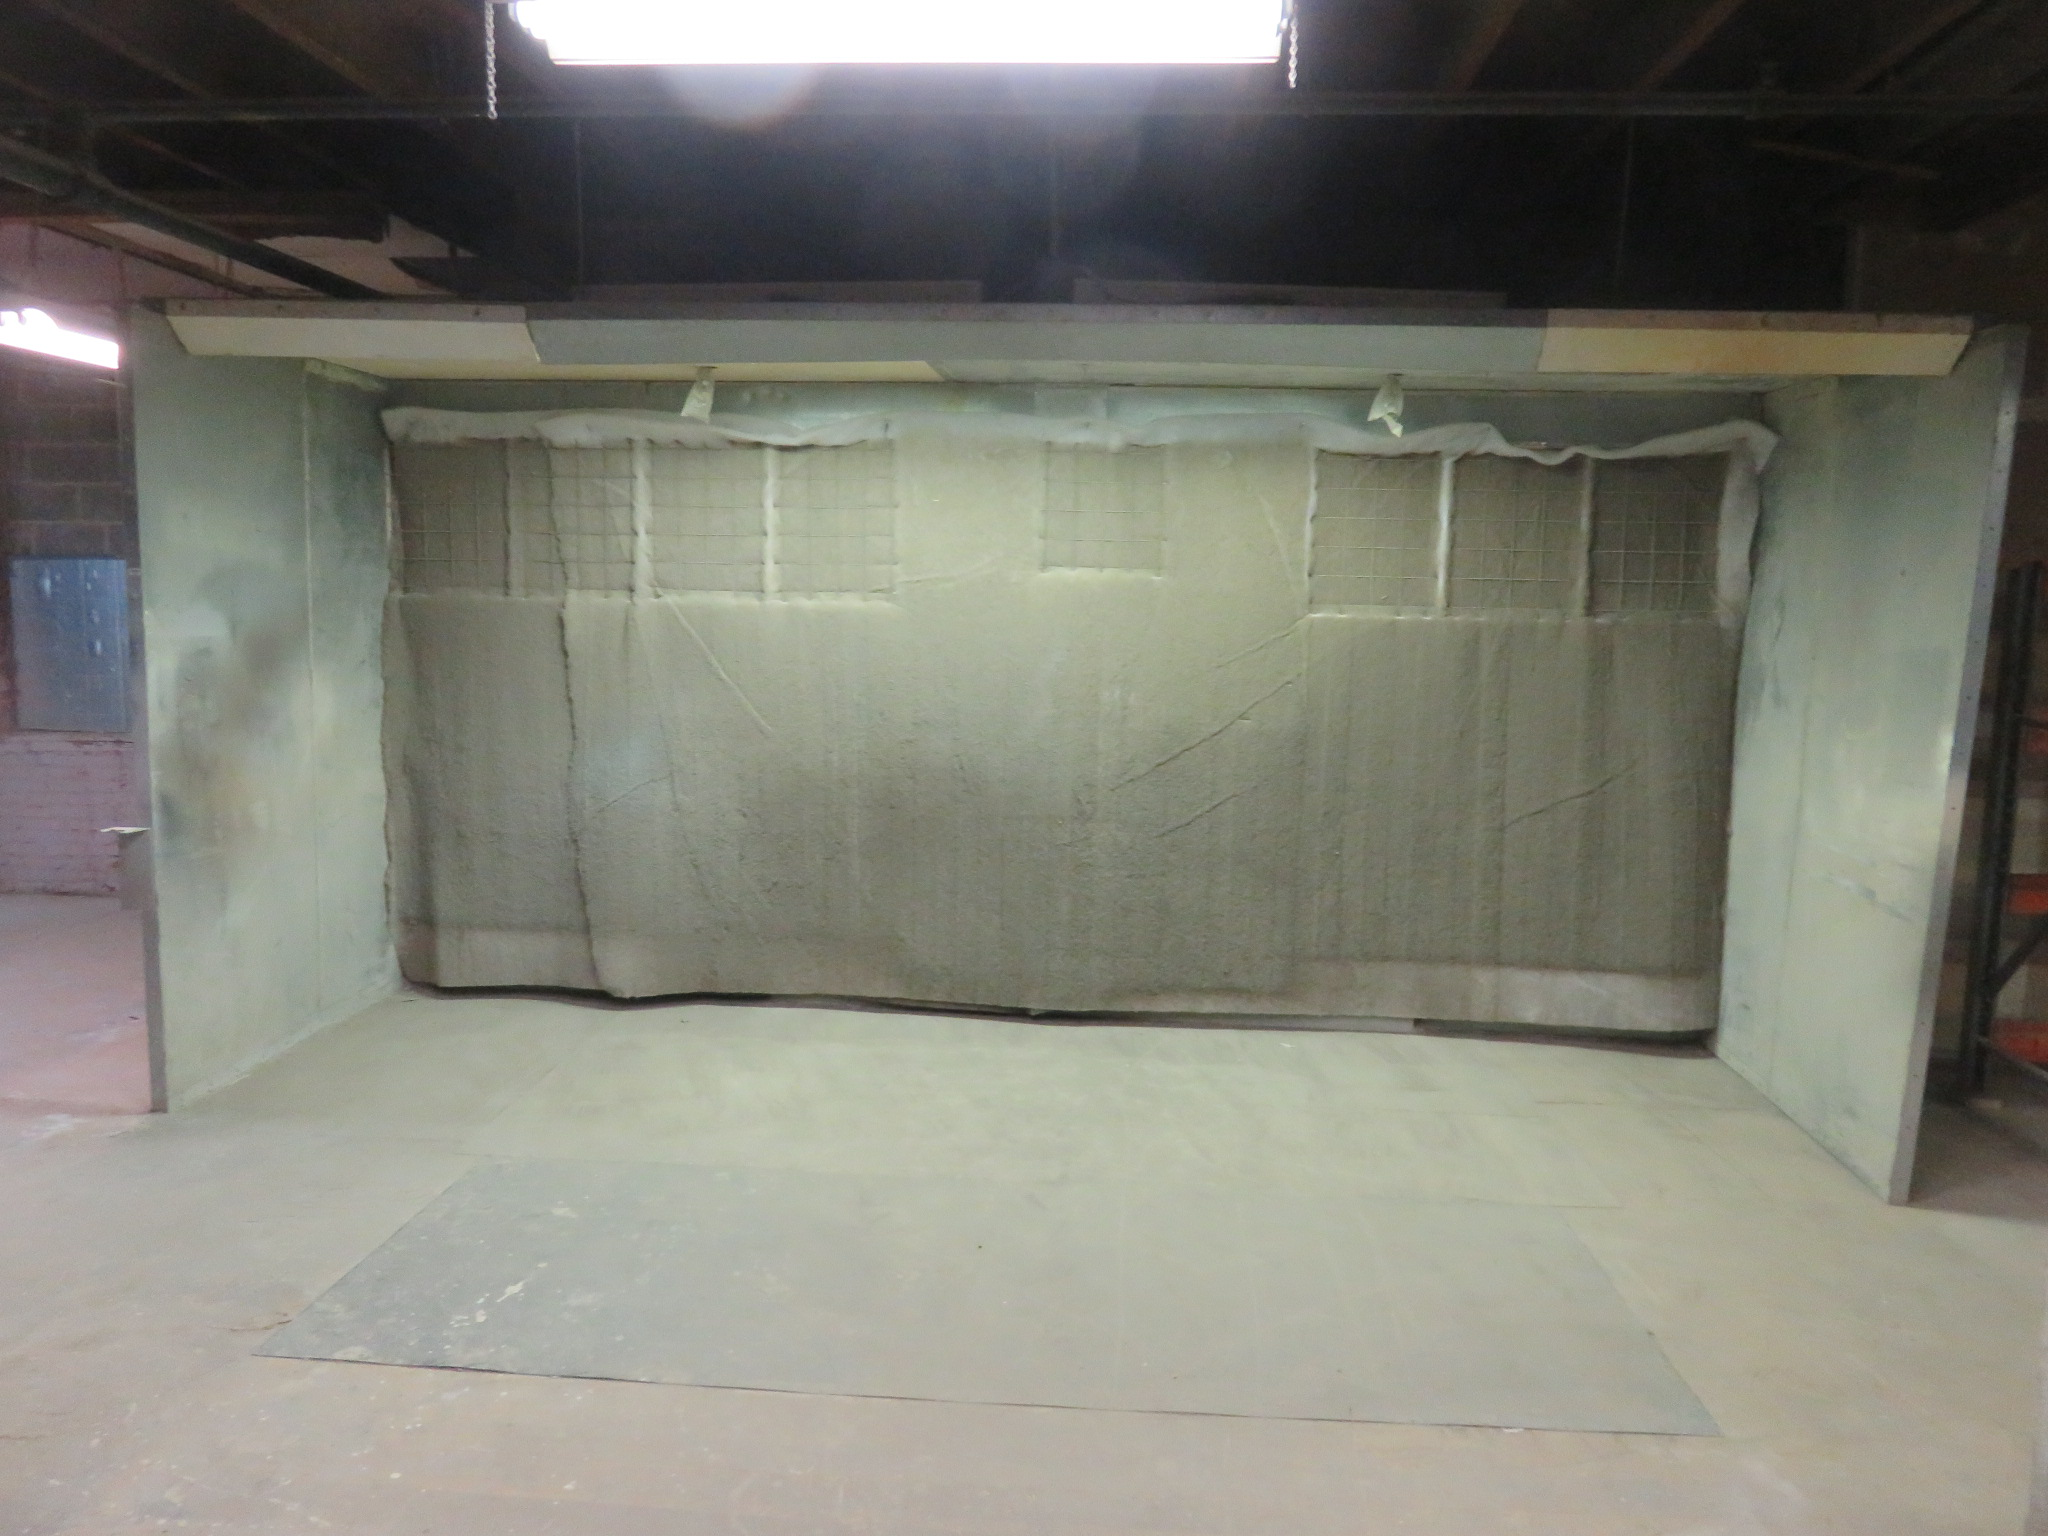 Paint Booth approx. 17 'x 8' x 8'